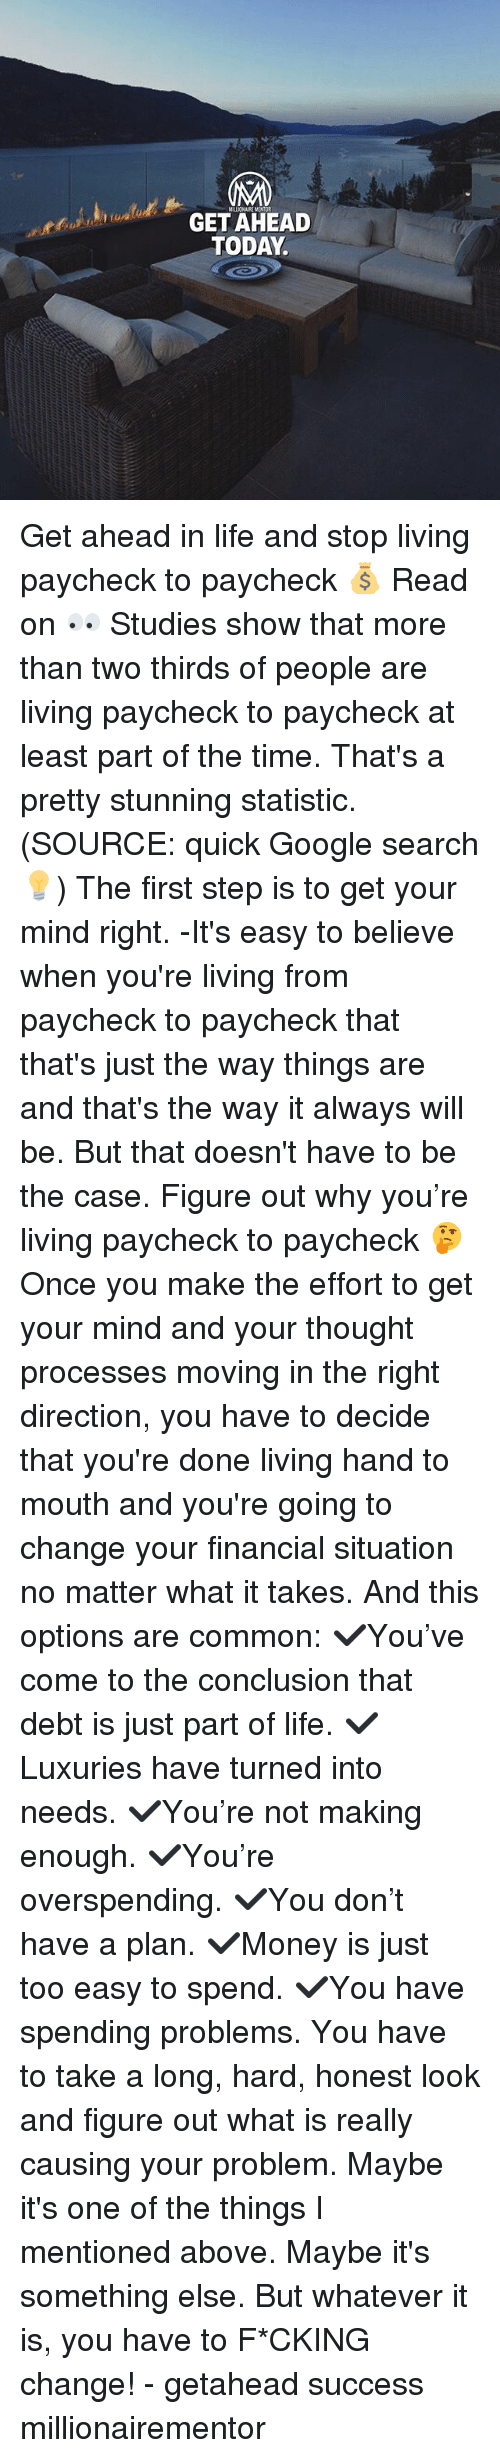 Statistic: MILLIOHAIRE MENT  GET AHEAD  TODAY. Get ahead in life and stop living paycheck to paycheck 💰 Read on 👀 Studies show that more than two thirds of people are living paycheck to paycheck at least part of the time. That's a pretty stunning statistic. (SOURCE: quick Google search💡) The first step is to get your mind right. -It's easy to believe when you're living from paycheck to paycheck that that's just the way things are and that's the way it always will be. But that doesn't have to be the case. Figure out why you're living paycheck to paycheck 🤔 Once you make the effort to get your mind and your thought processes moving in the right direction, you have to decide that you're done living hand to mouth and you're going to change your financial situation no matter what it takes. And this options are common: ✔️You've come to the conclusion that debt is just part of life. ✔️Luxuries have turned into needs. ✔️You're not making enough. ✔️You're overspending. ✔️You don't have a plan. ✔️Money is just too easy to spend. ✔️You have spending problems. You have to take a long, hard, honest look and figure out what is really causing your problem. Maybe it's one of the things I mentioned above. Maybe it's something else. But whatever it is, you have to F*CKING change! - getahead success millionairementor